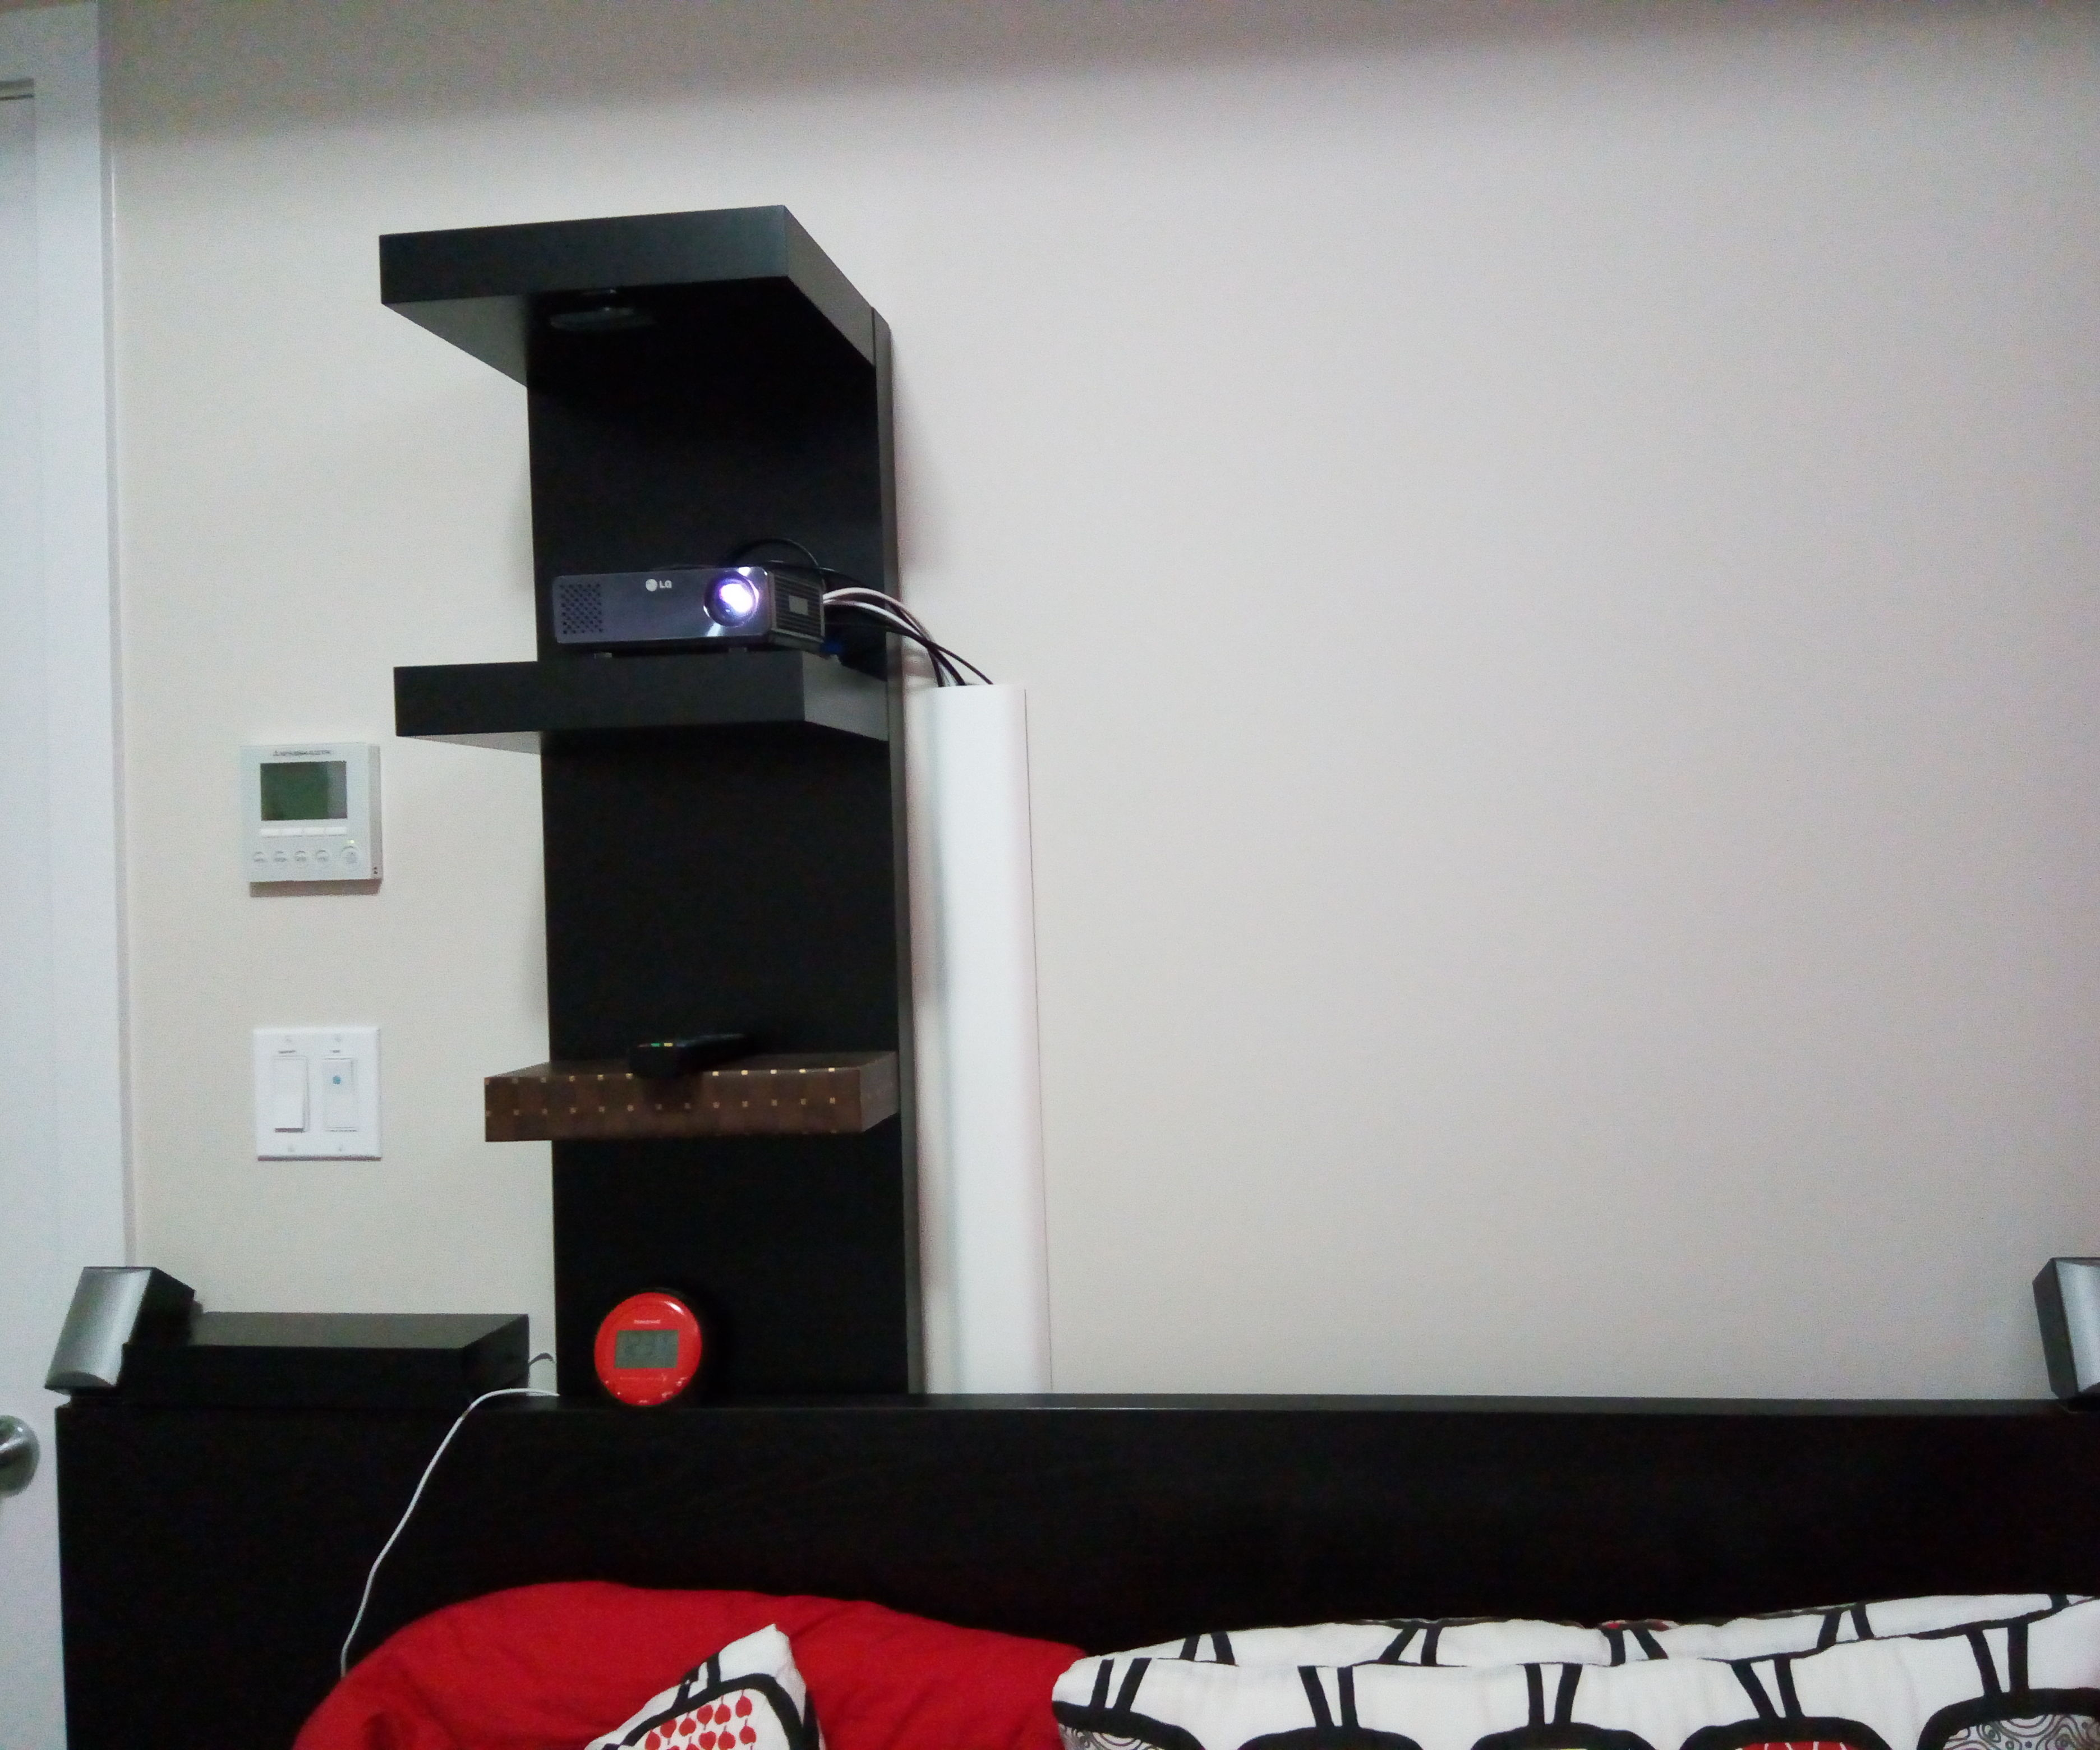 Mount Projector Without Drilling With IKEA LACK Shelf